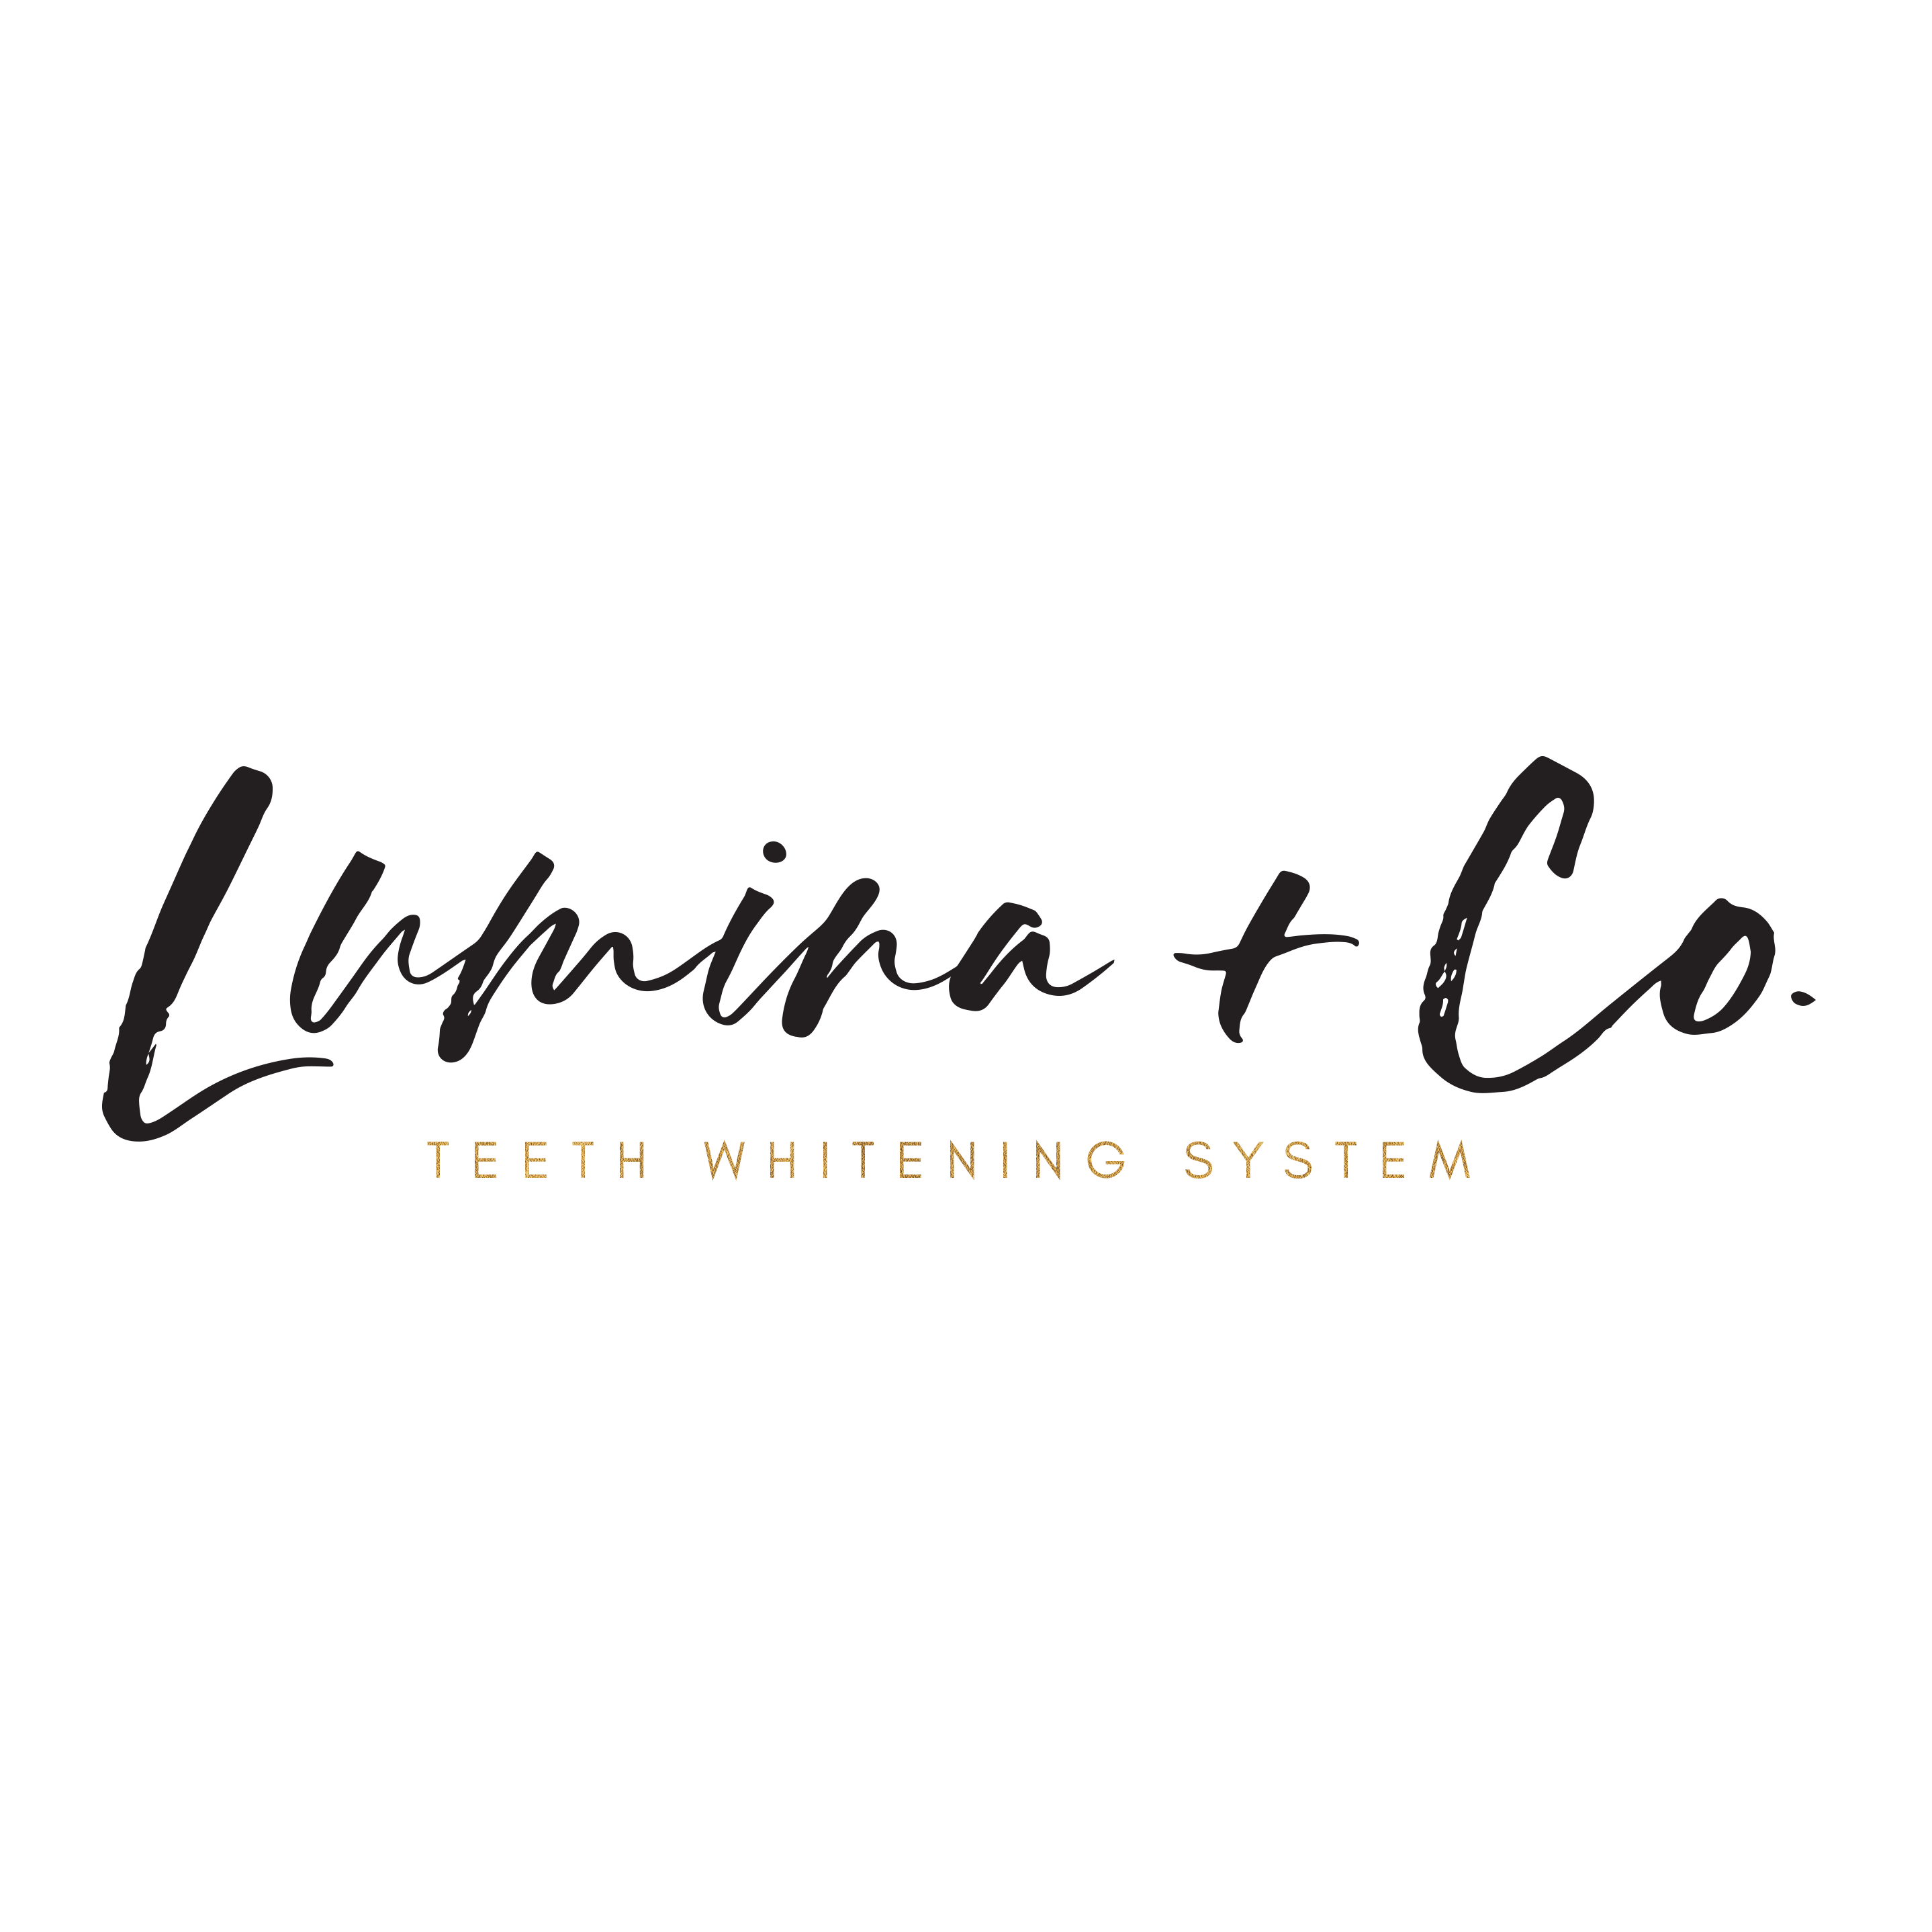 Lumina + Co. Teeth Whitening System